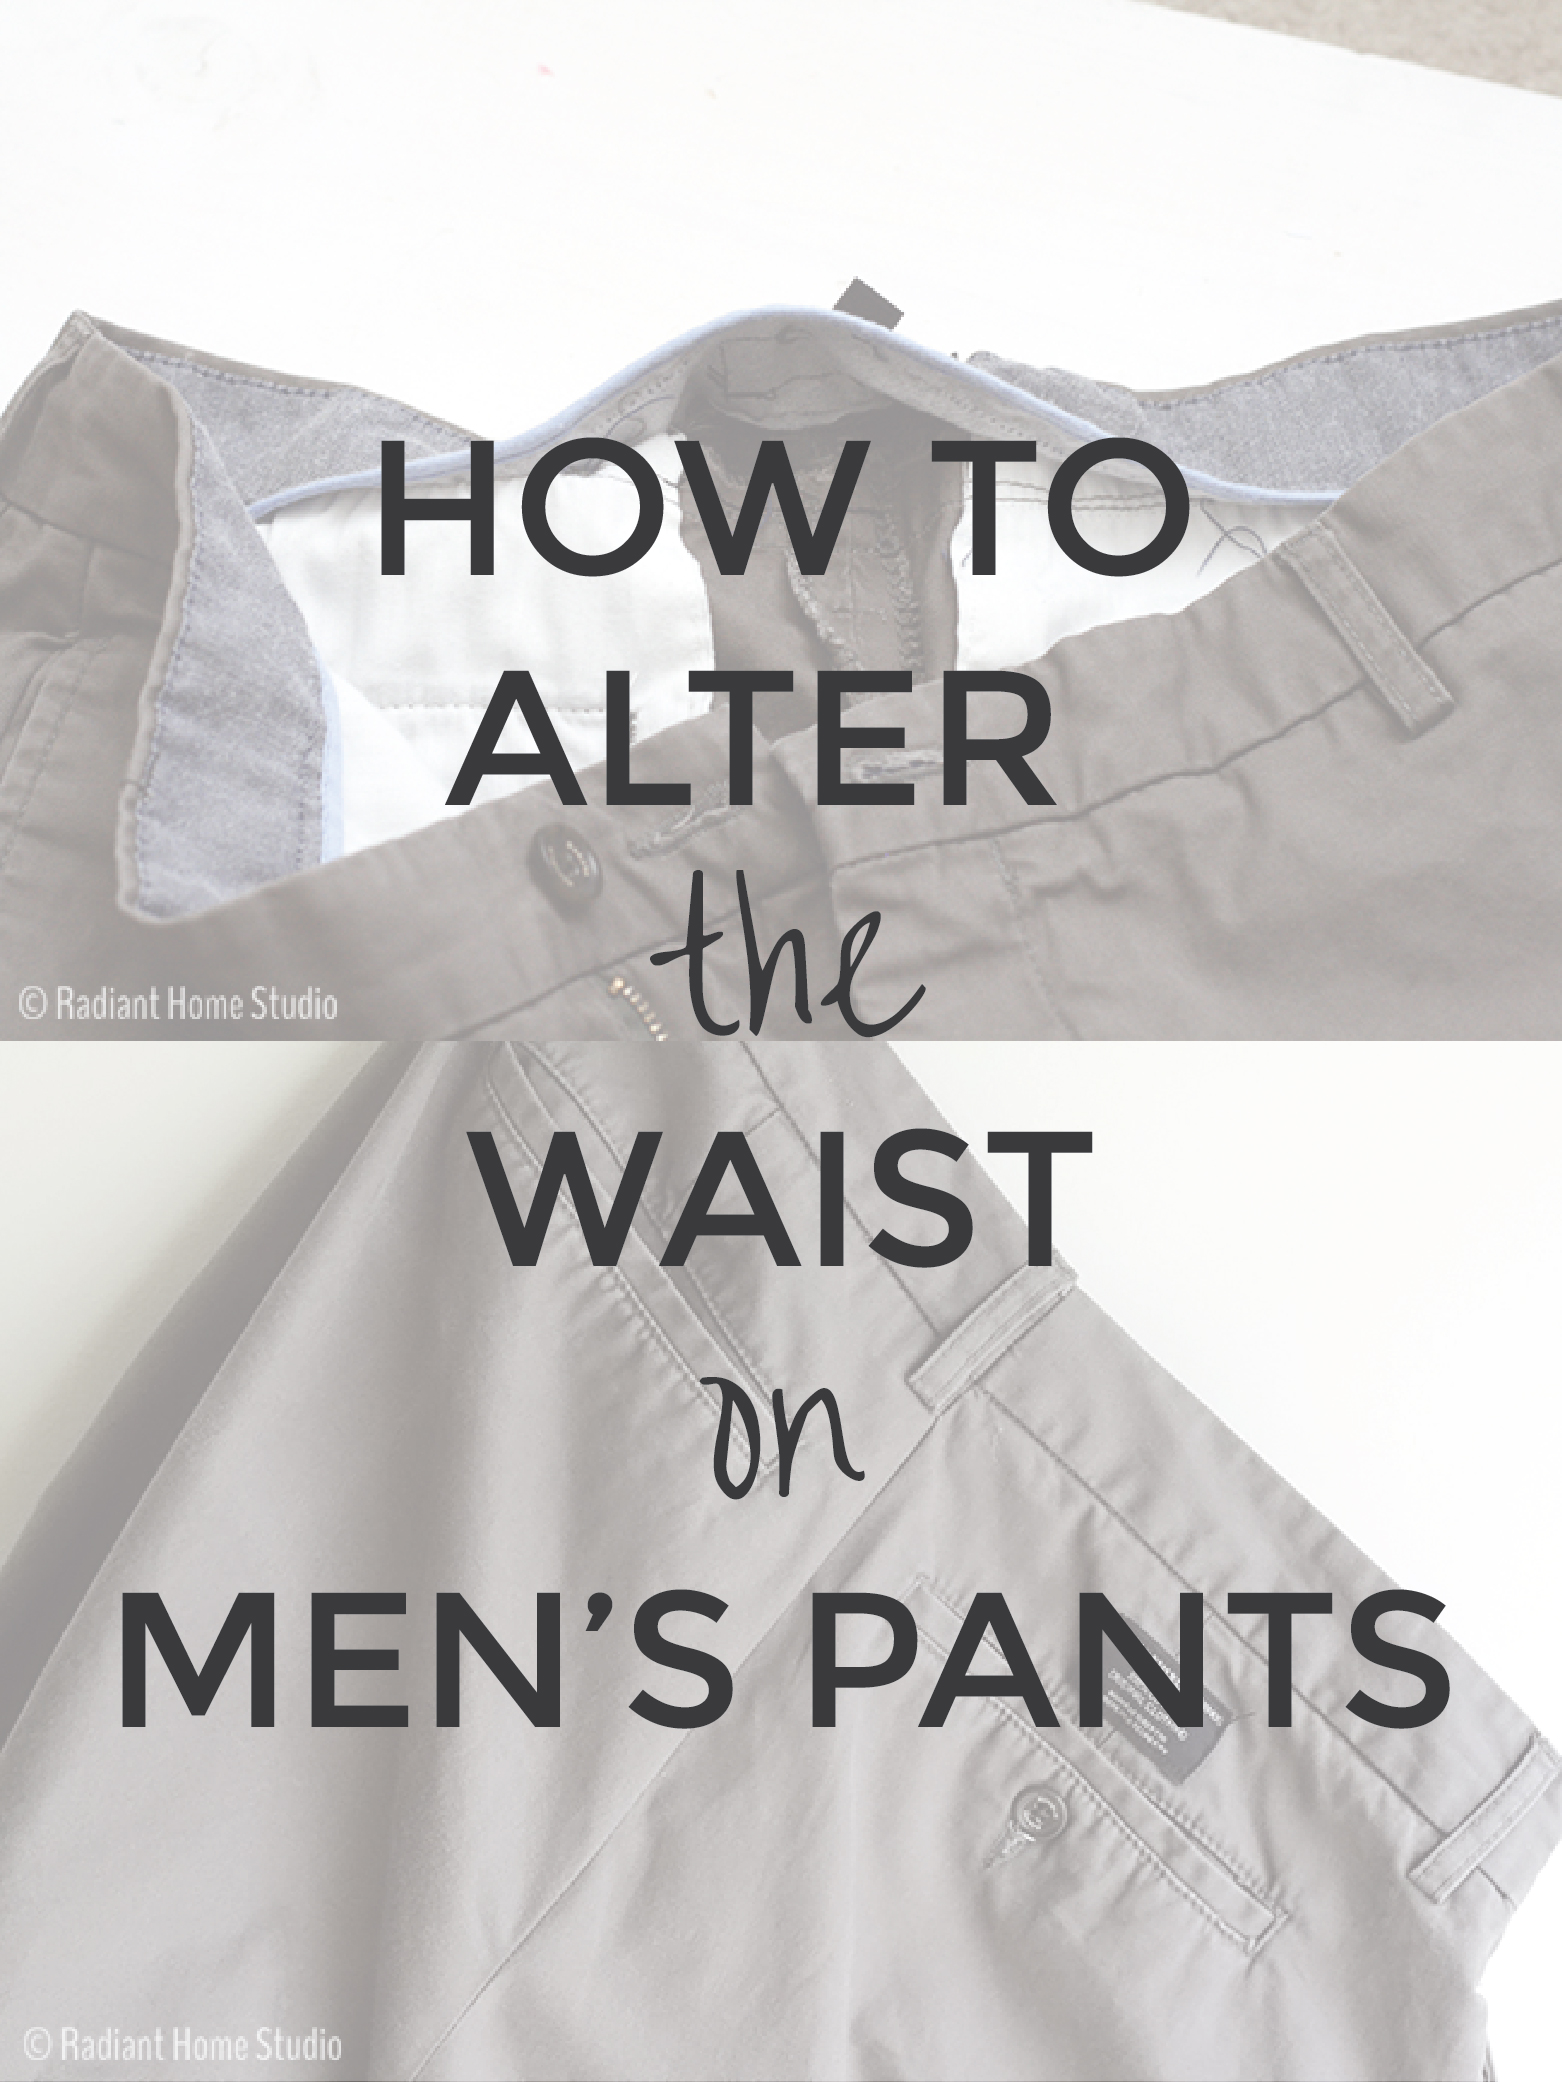 How to Alter the Waist on Men's Pants | Radiant Home Studio